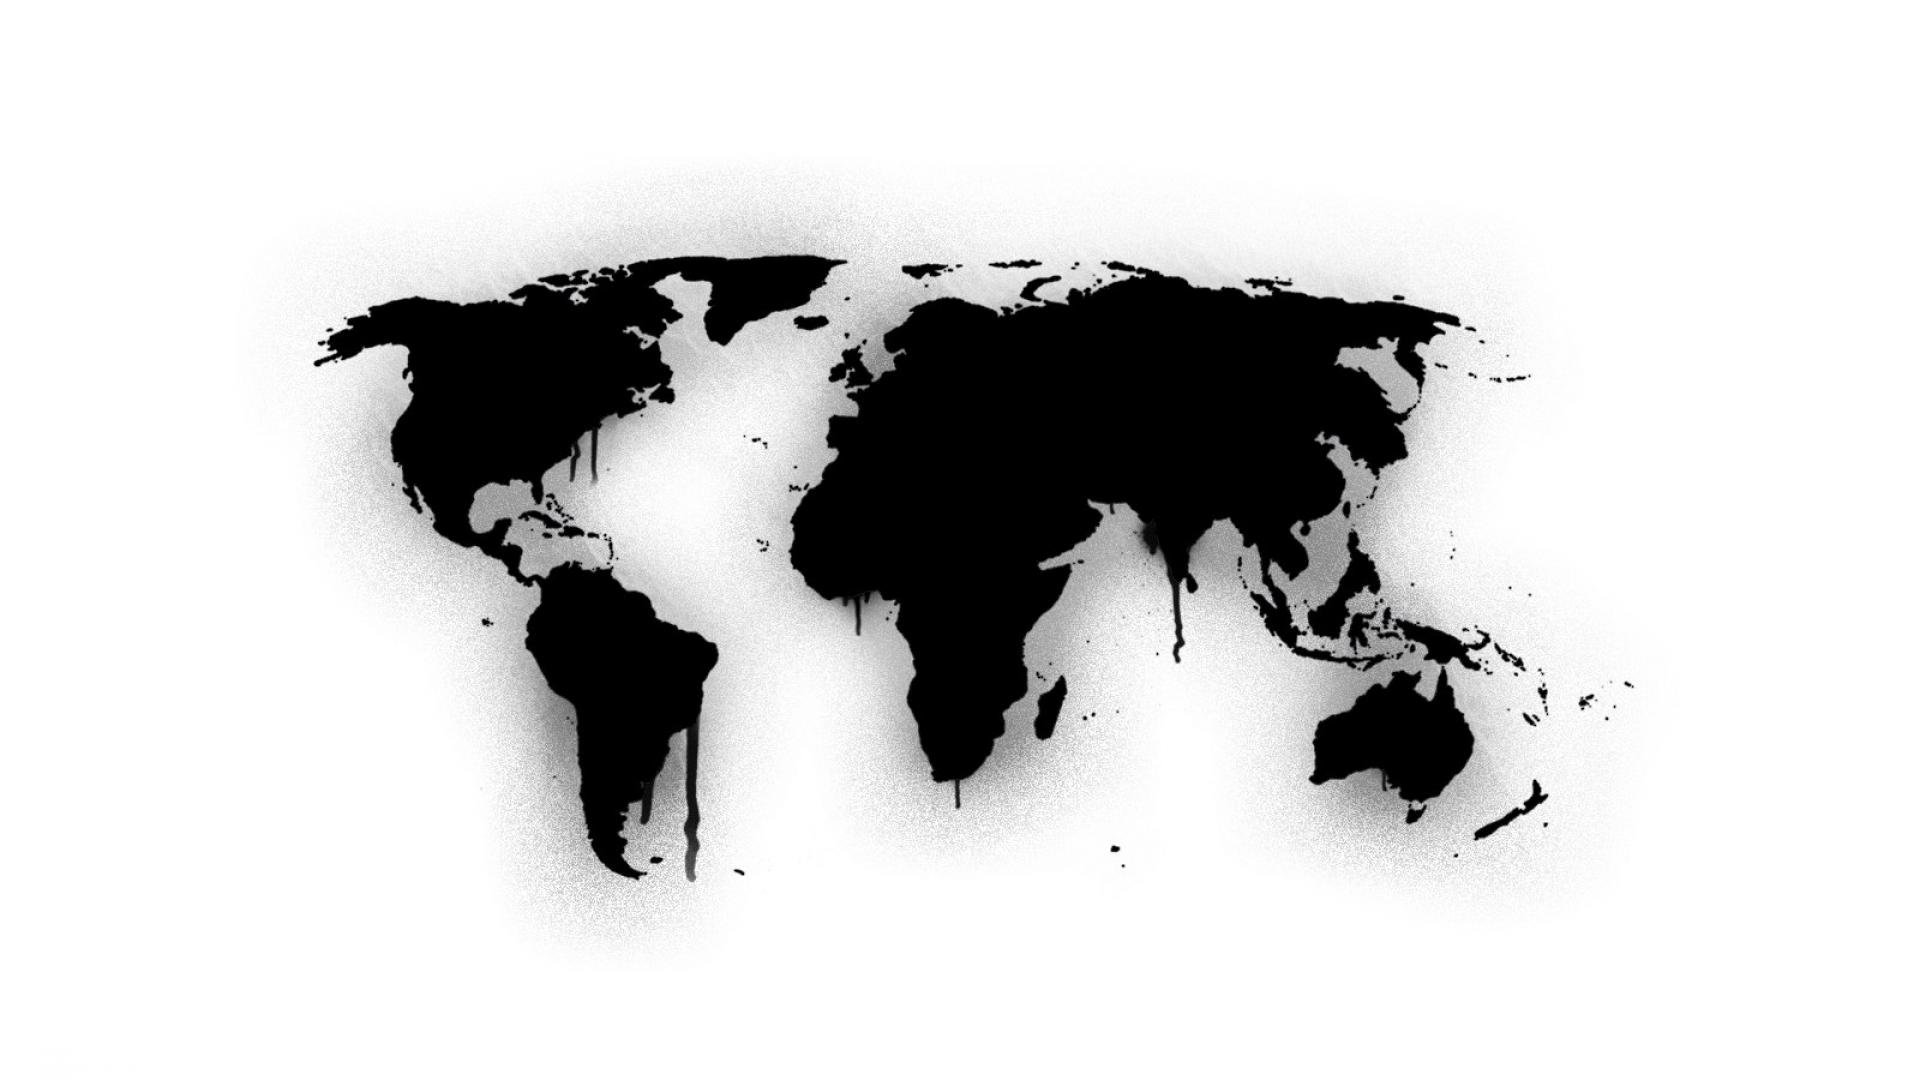 Download World Map Wallpaper Black And White Gallery